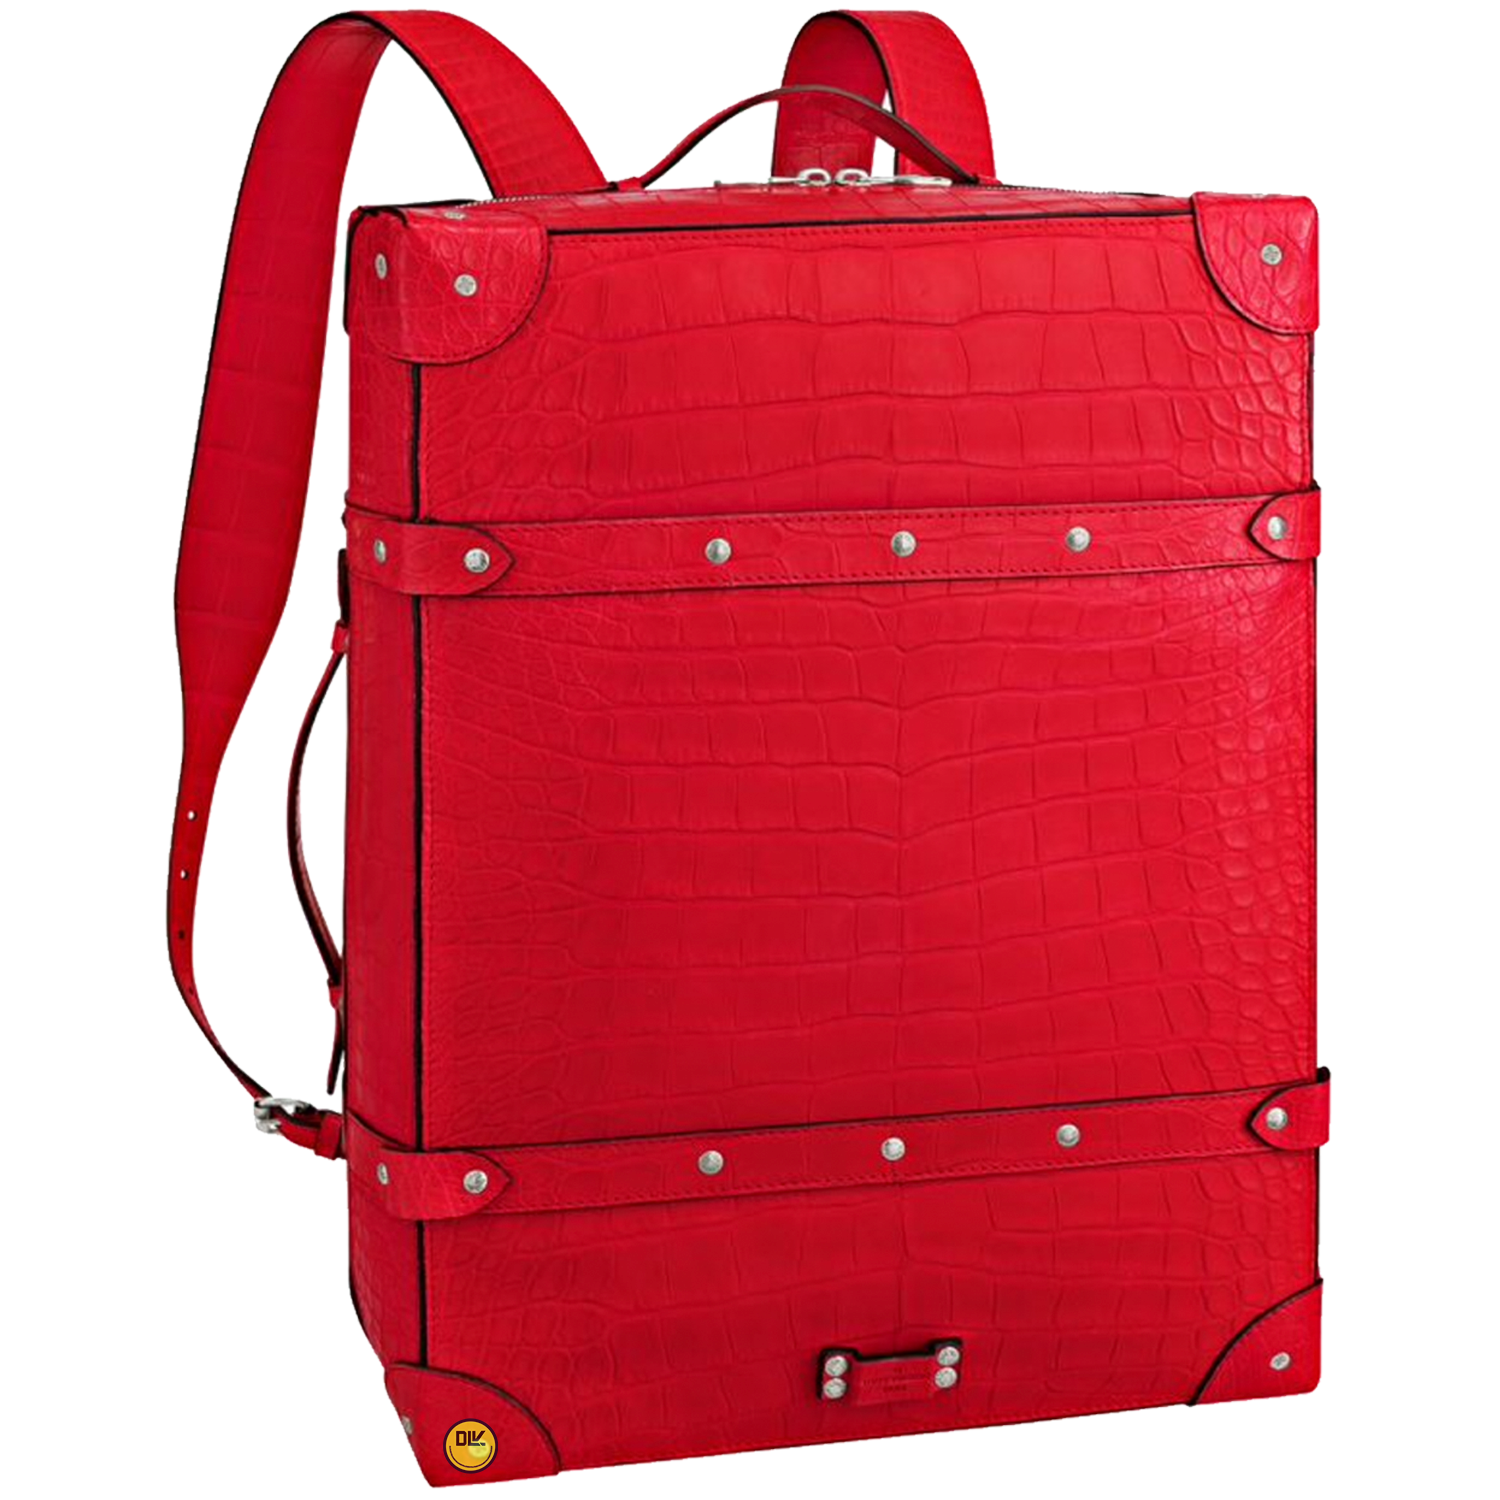 BACKPACK MM - €70,000 $104,000N96856croc rouge